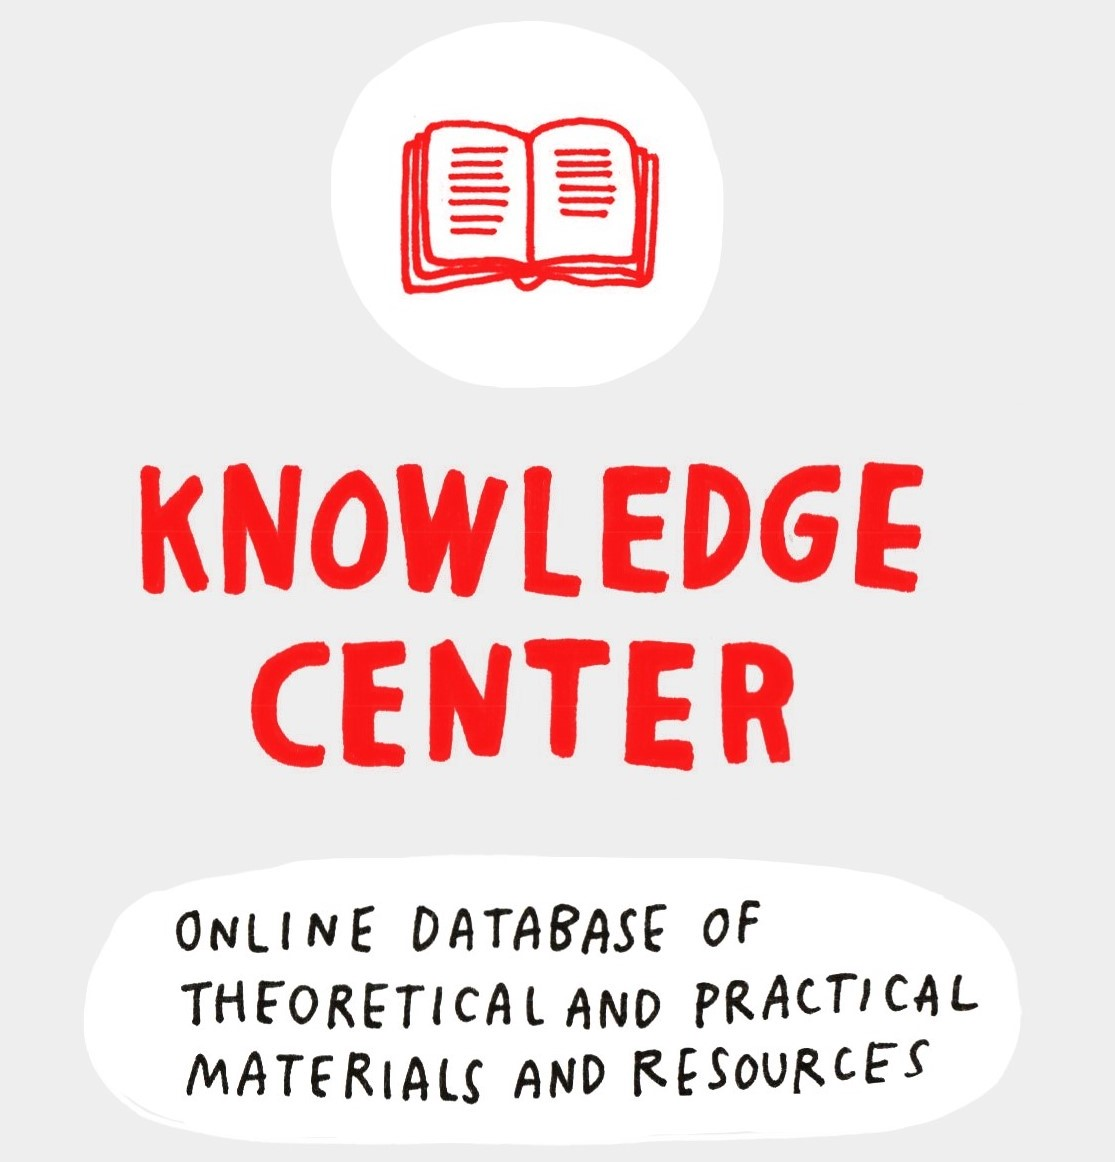 Knowledge Center: Online database of theoretical and practical materials and resources